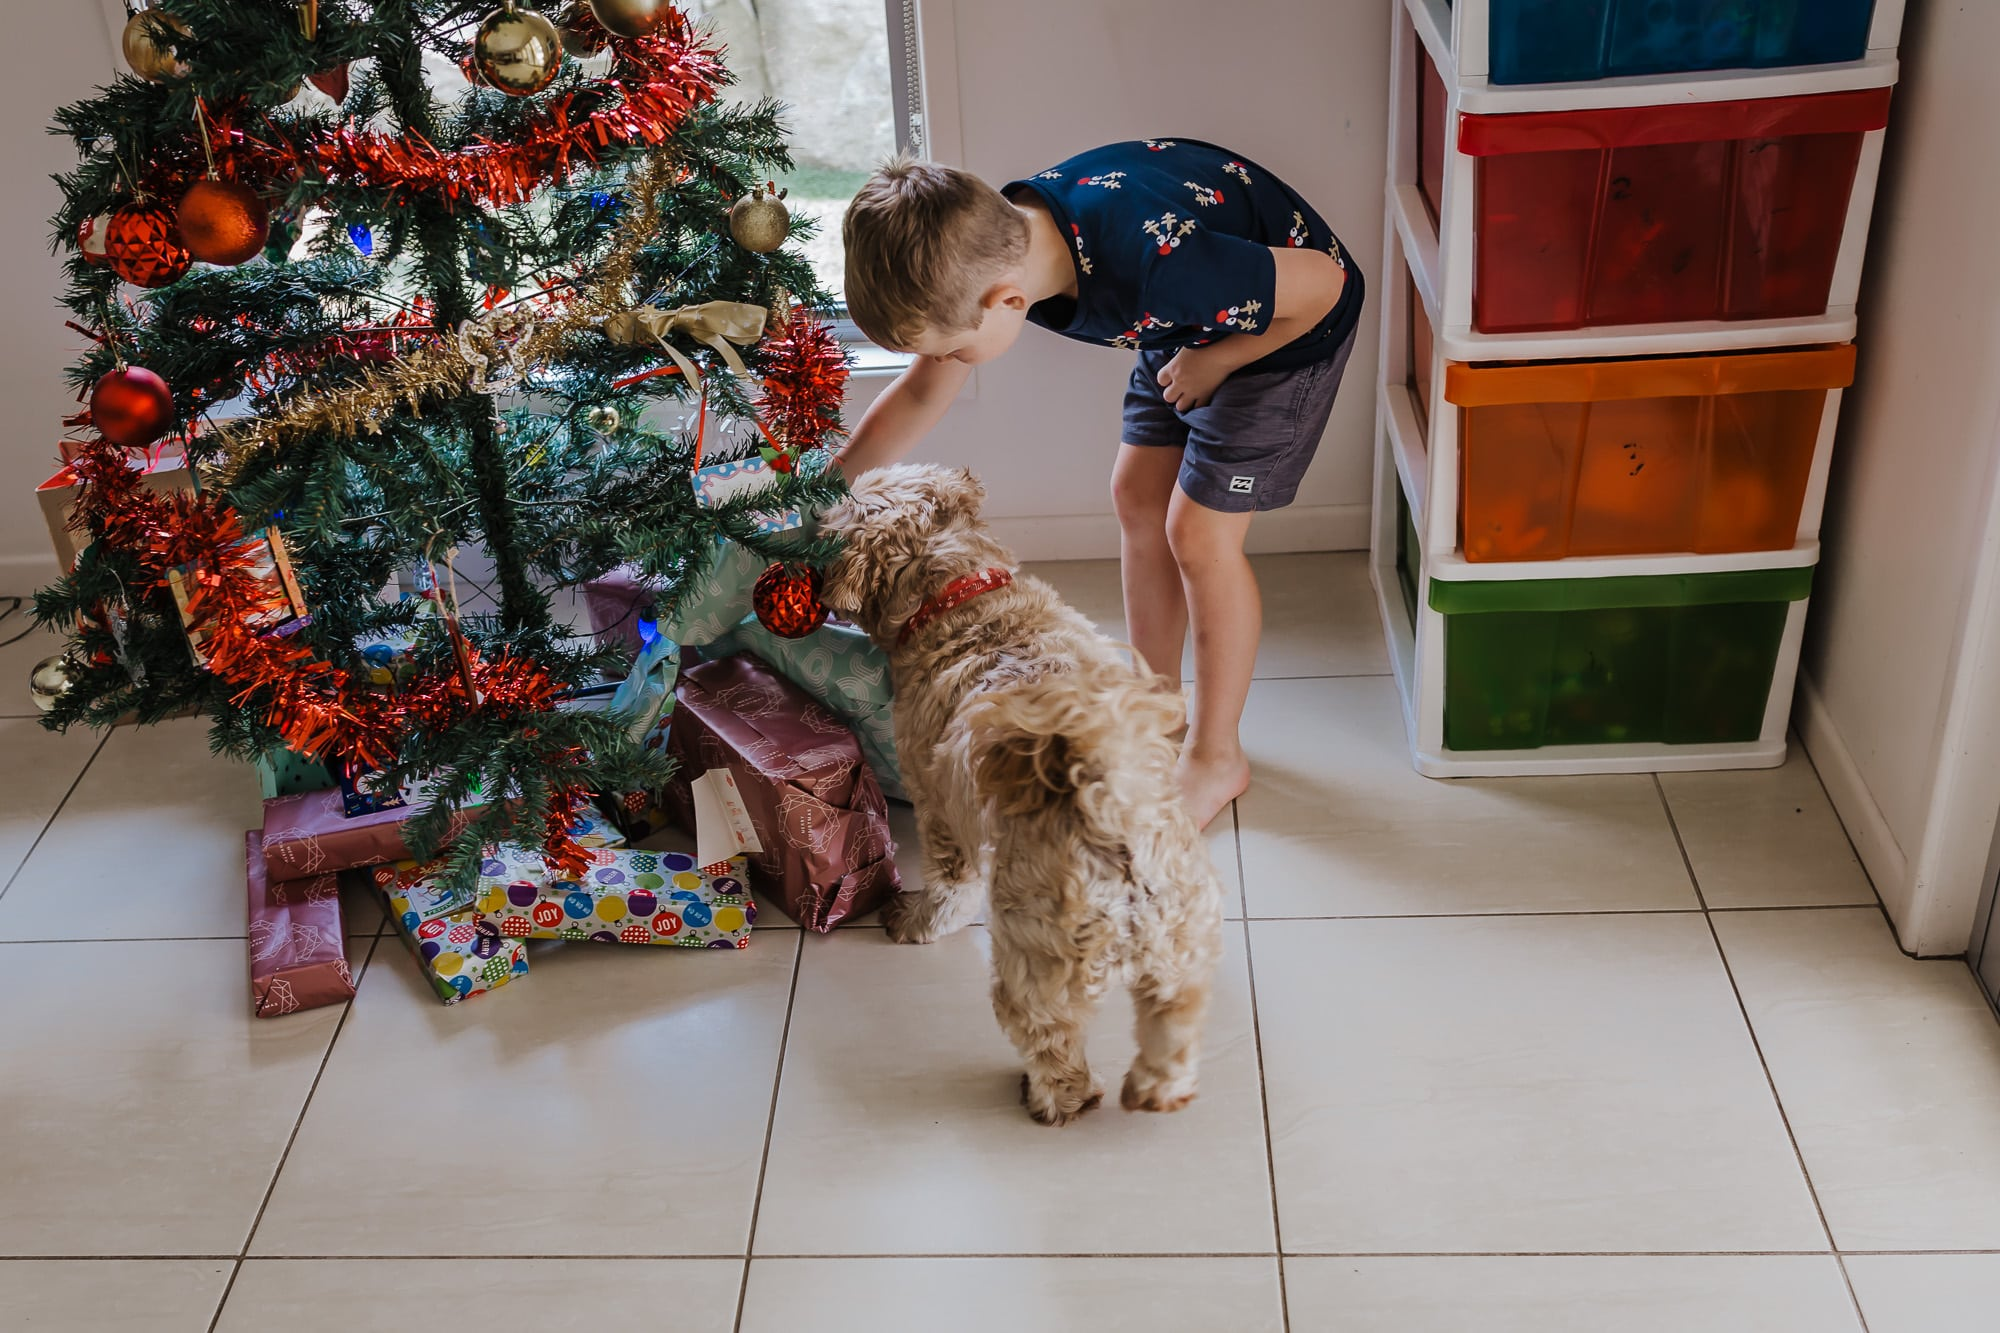 a young boy shows his pet dog the present under the tree and in particular the dog present